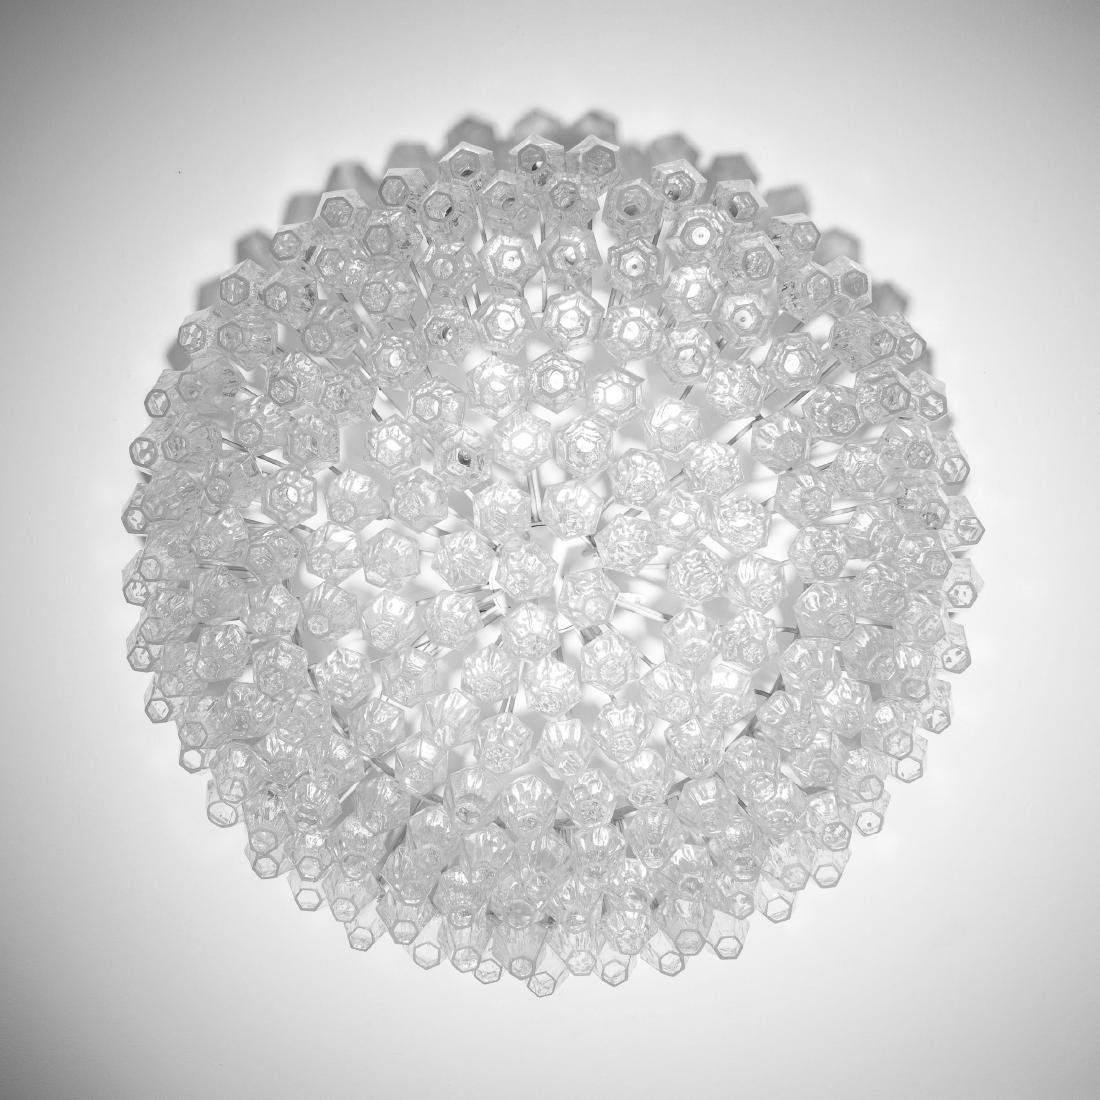 'Poliedrica' ceiling light, c. 1958 - 2